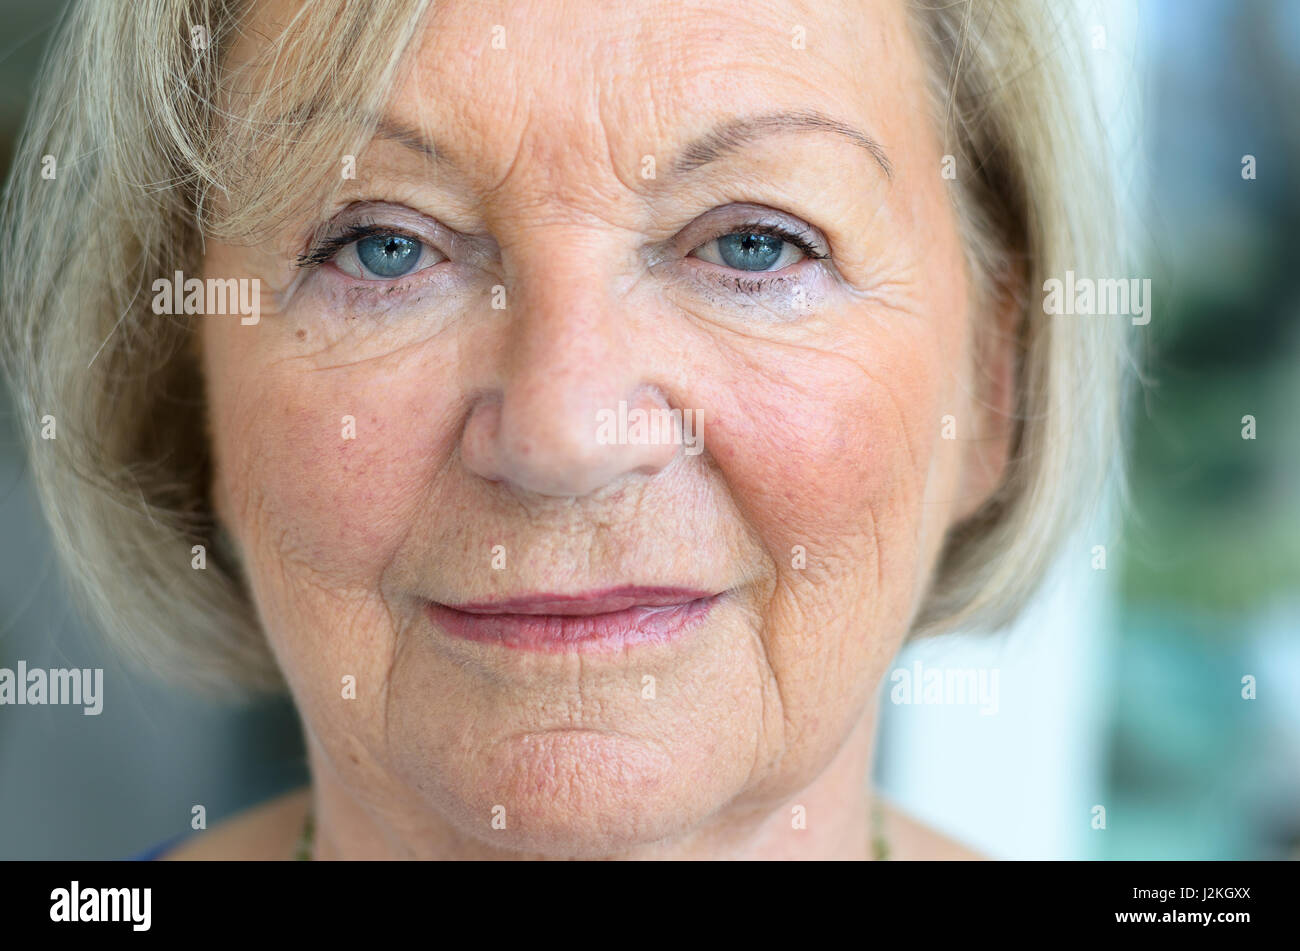 Close up cropped view of the face of an attractive senior woman with fair hair, blue eyes and wrinkled skin looking - Stock Image